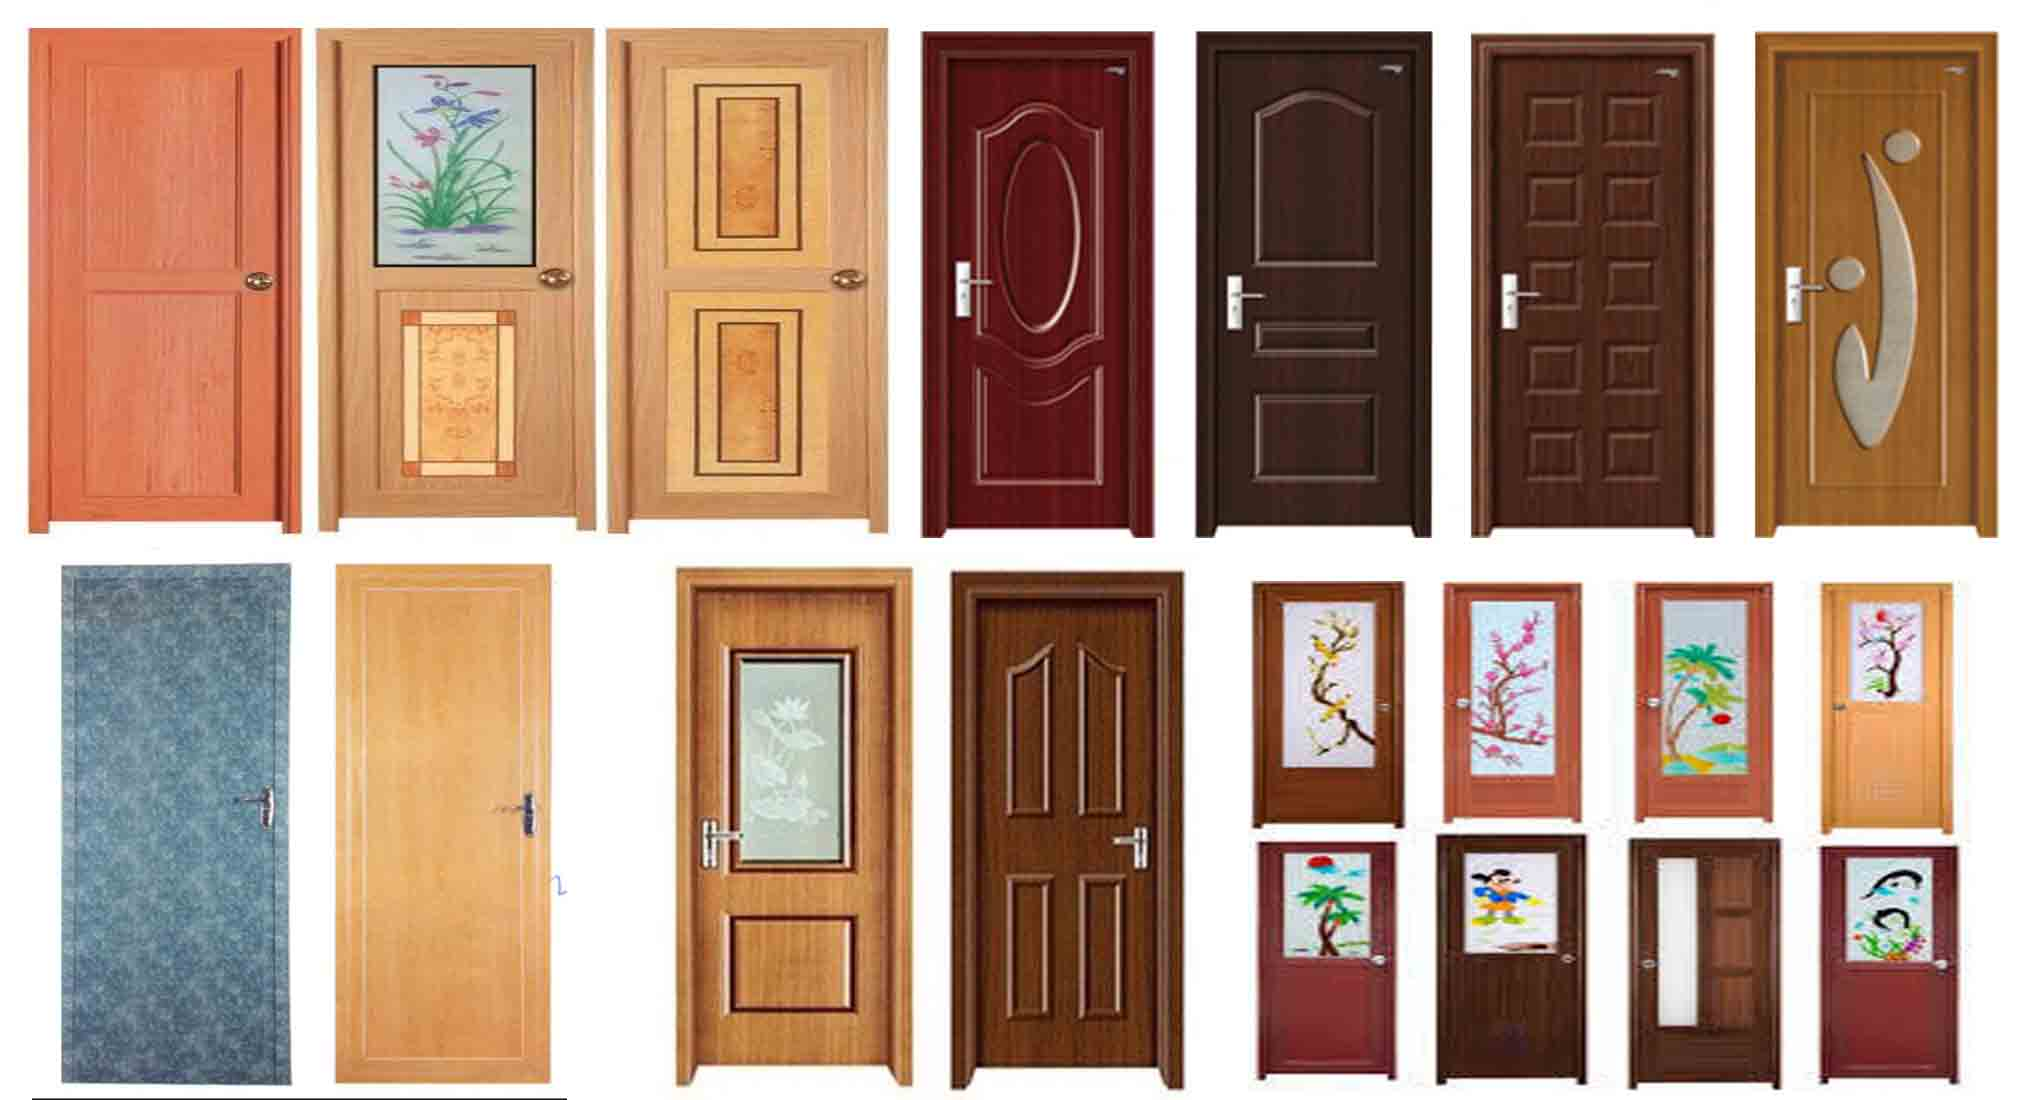 Authorised Dealer Of Sintex PVC Doors \u0026 PVC Flooring In Kottayam | Thirunakkara | Thekkum Gopuram | Kerala  sc 1 st  International Directory | fordern & International Directory | fordern